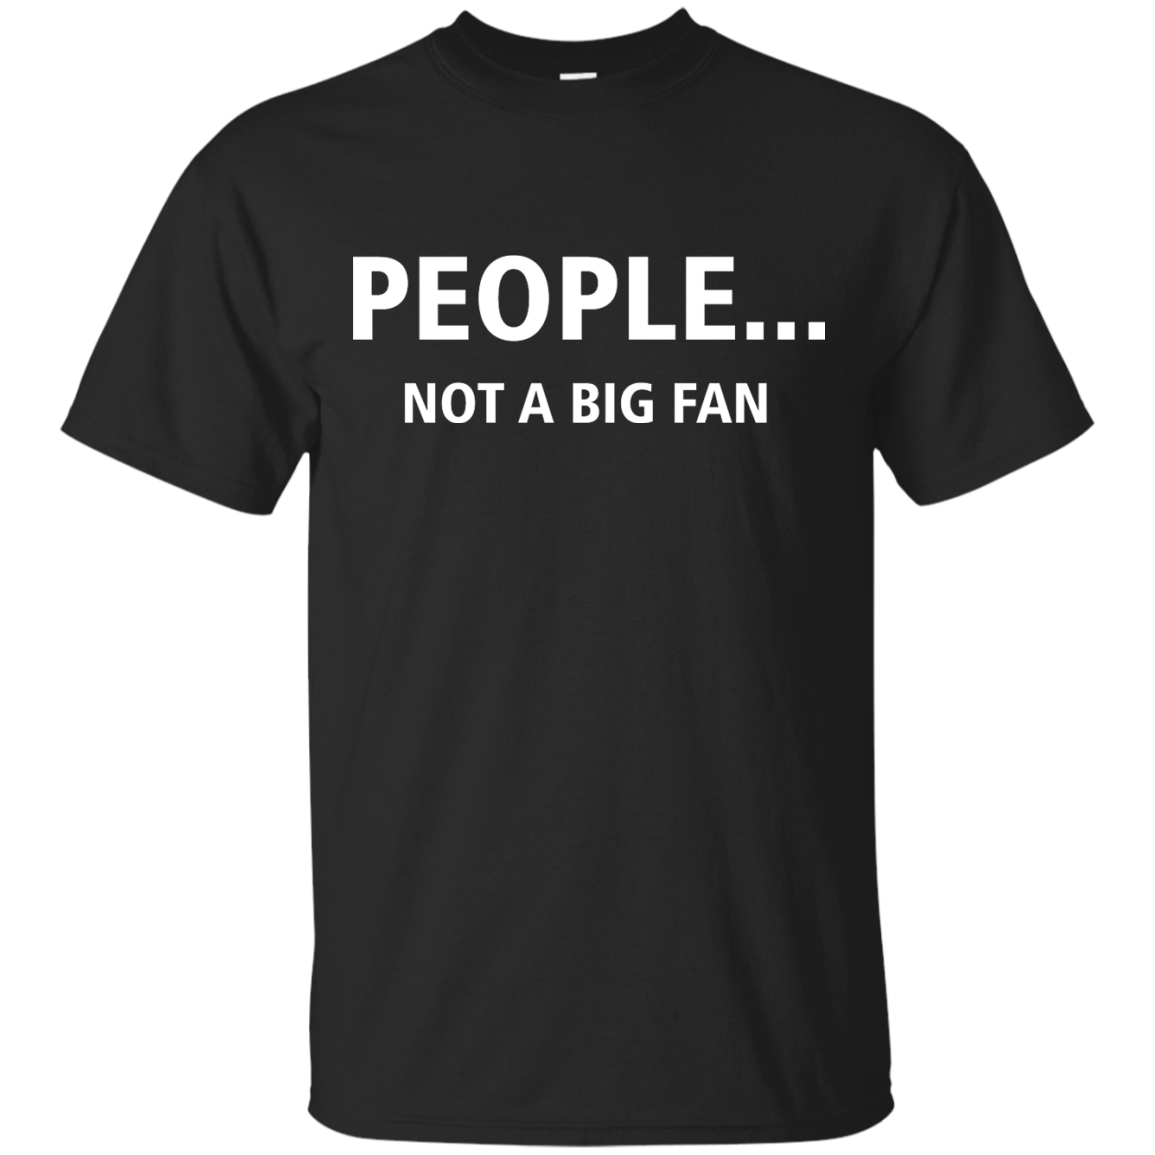 Awesome Tees: Funny - People not a big fan T-shirt,Tank top & Hoodies